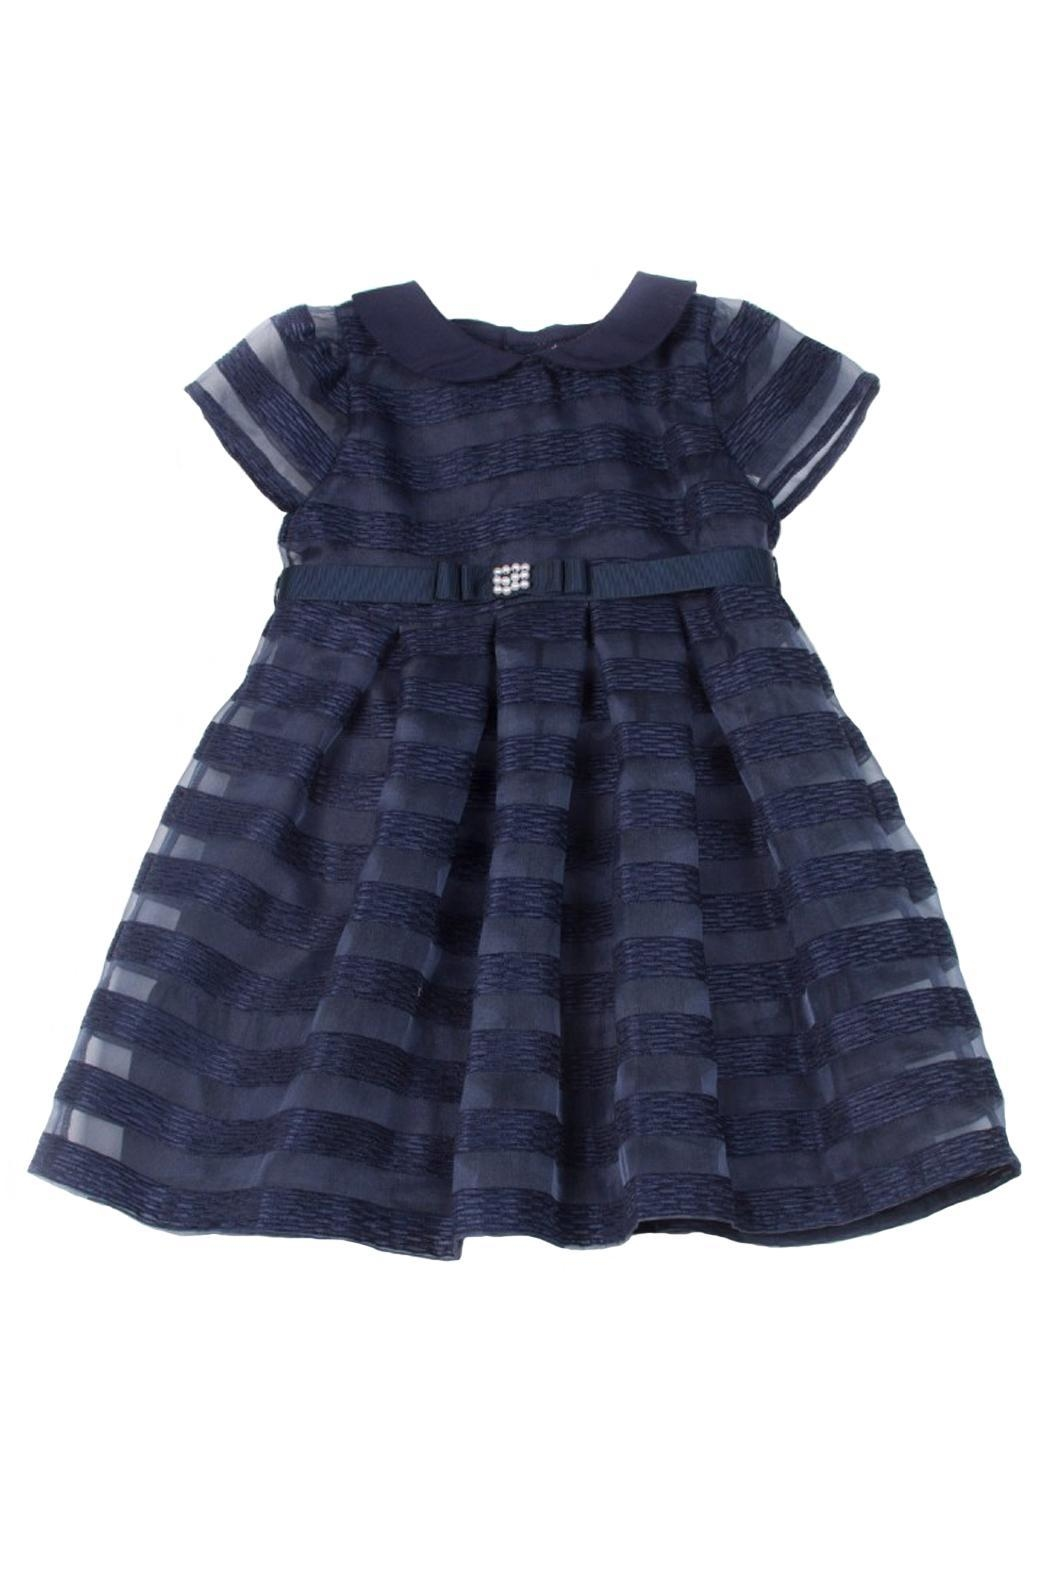 Malvi & Co. Navy Party Dress. - Main Image